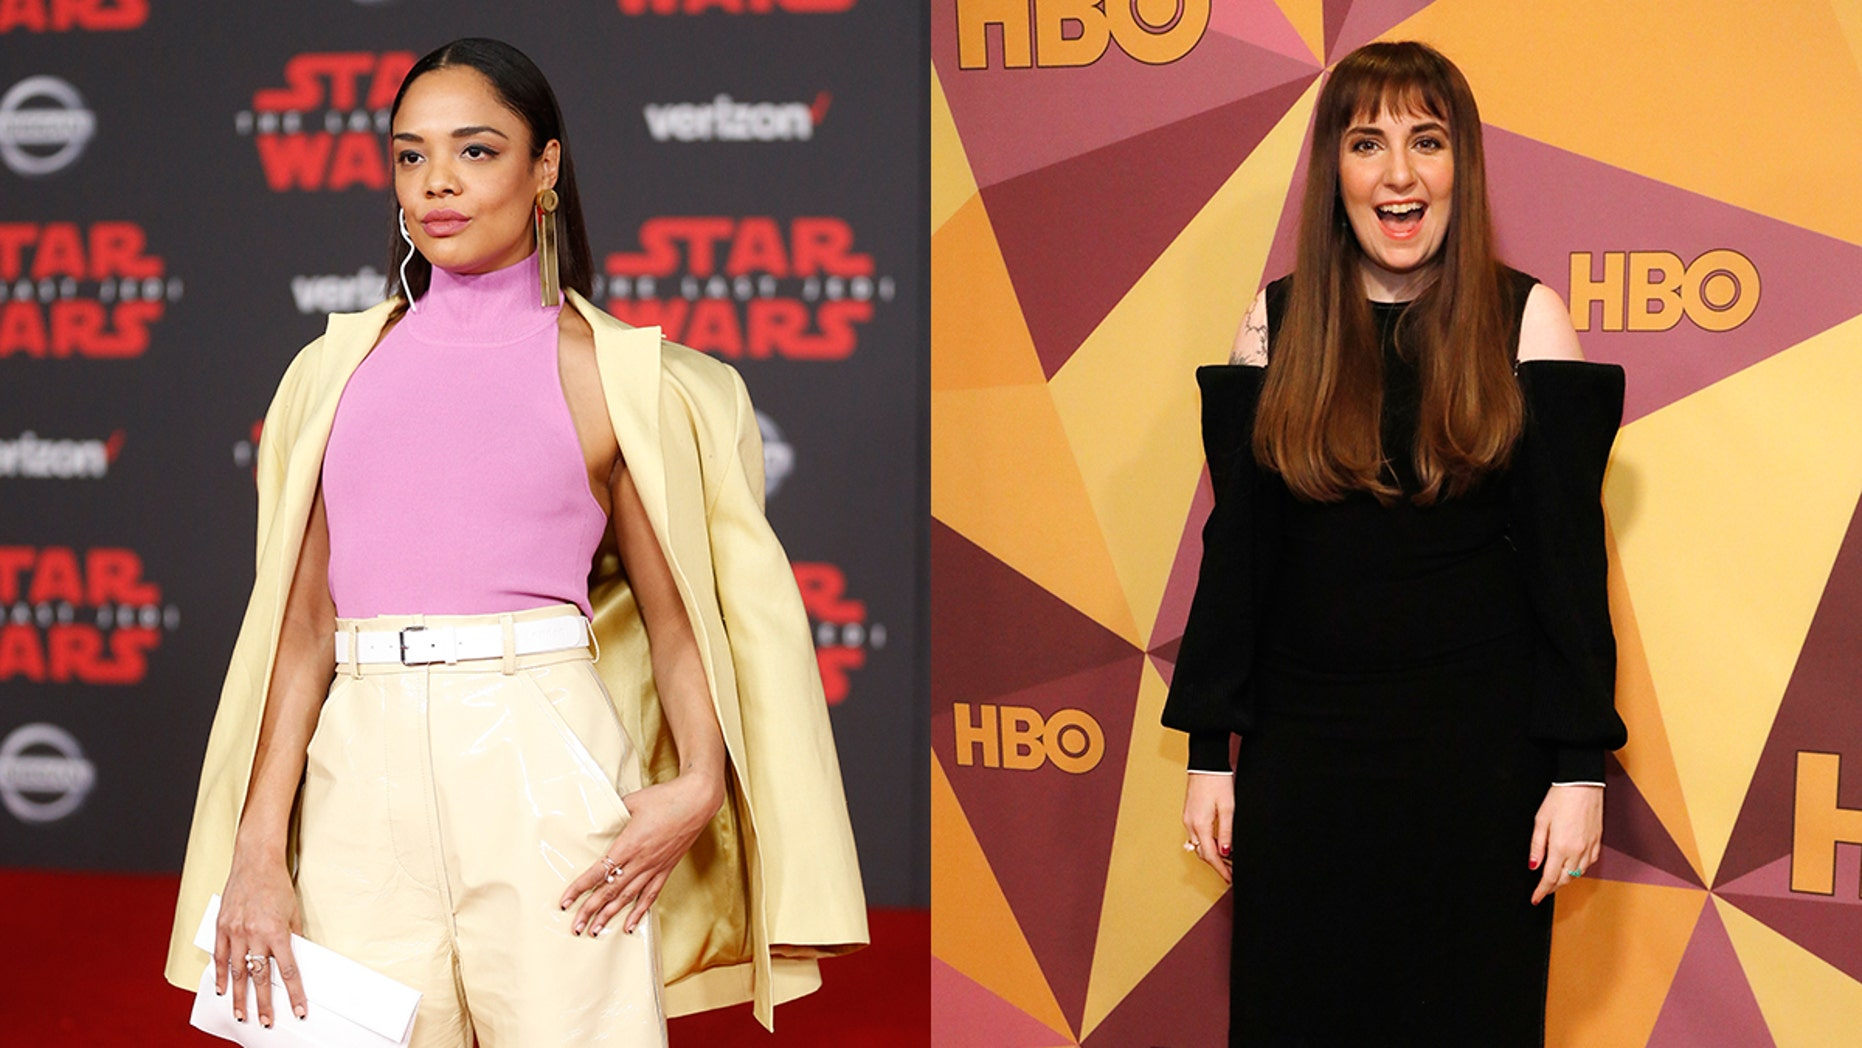 Tessa Thompson and Lena Dunham